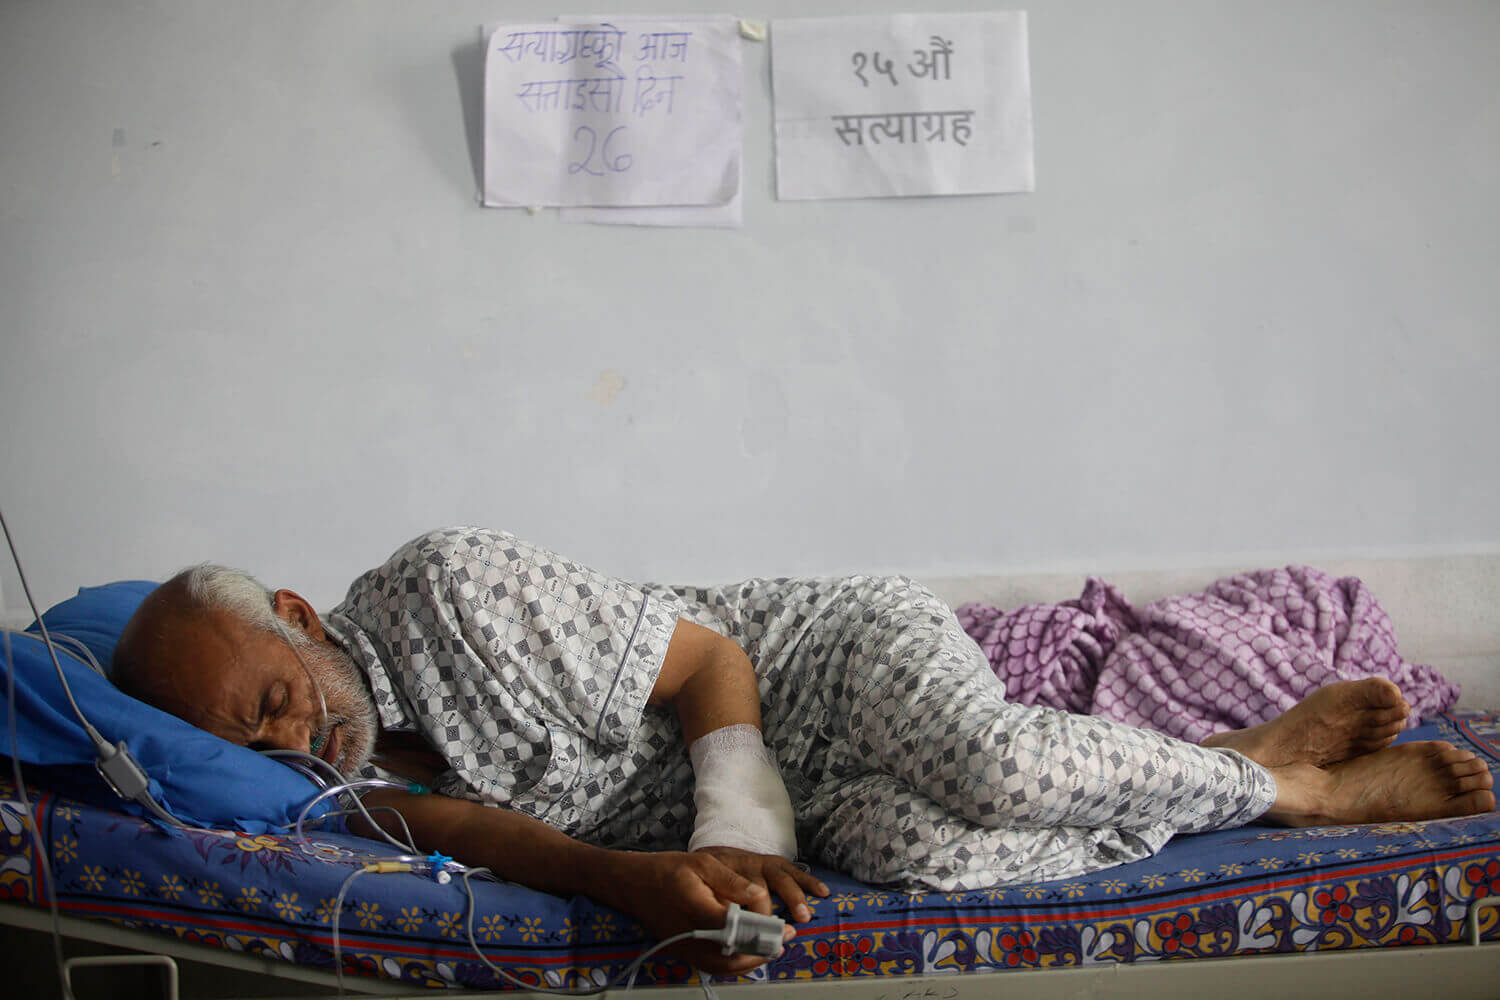 Agreement with Dr KC